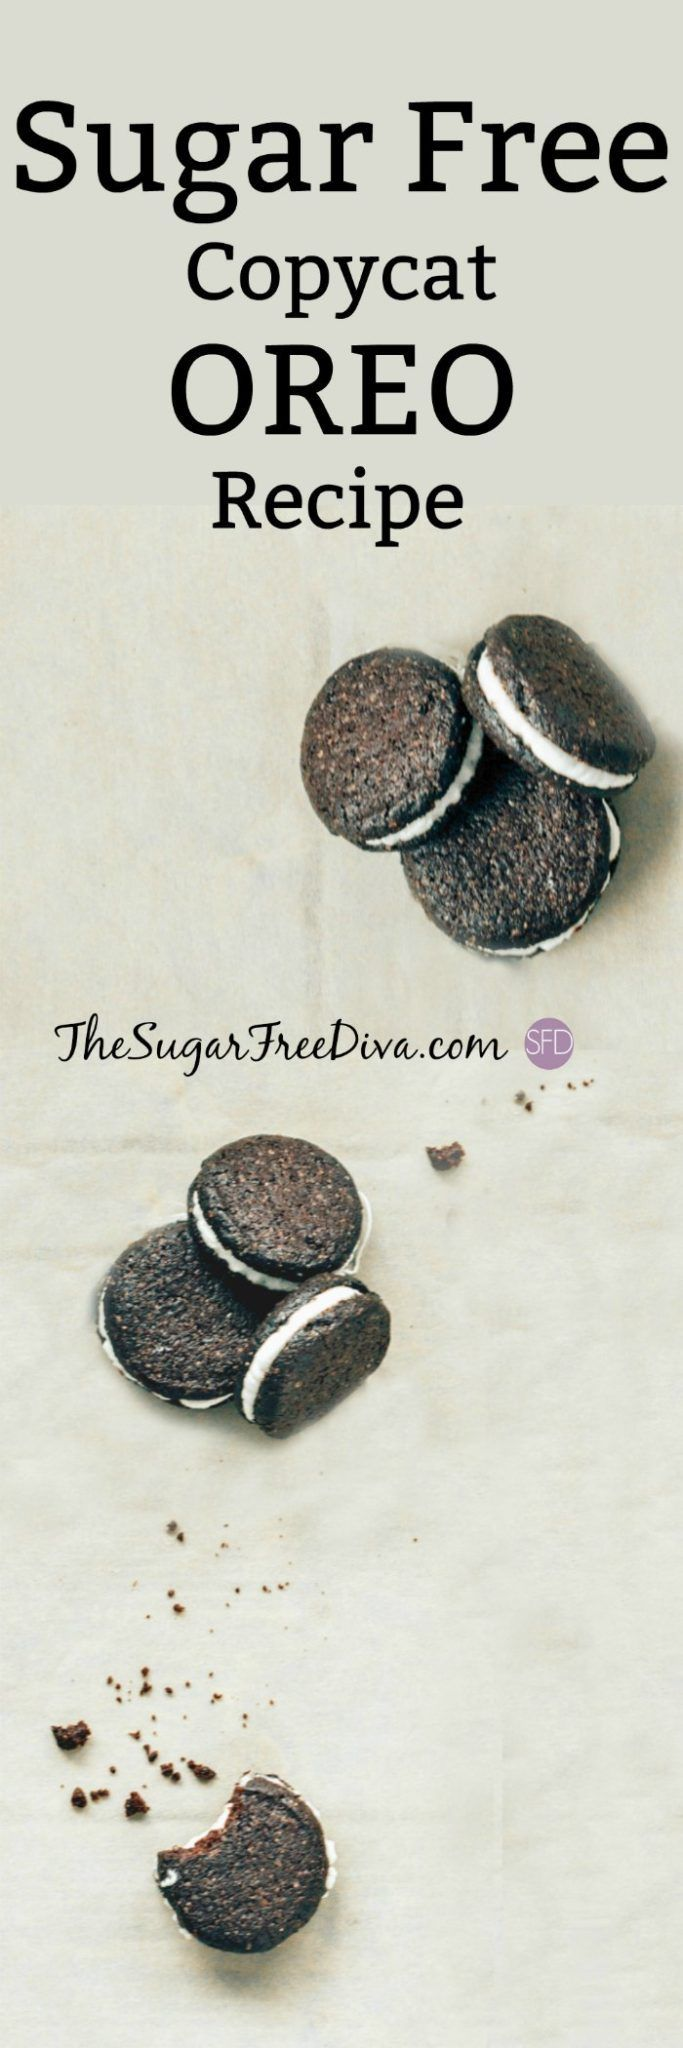 Sugar Free Copycat Oreo Cookies- this sugar free cookie recipe is the perfect sweet treat for fall, parties, dessert, Halloween, and just plain snacking on. They are really yummy too!!